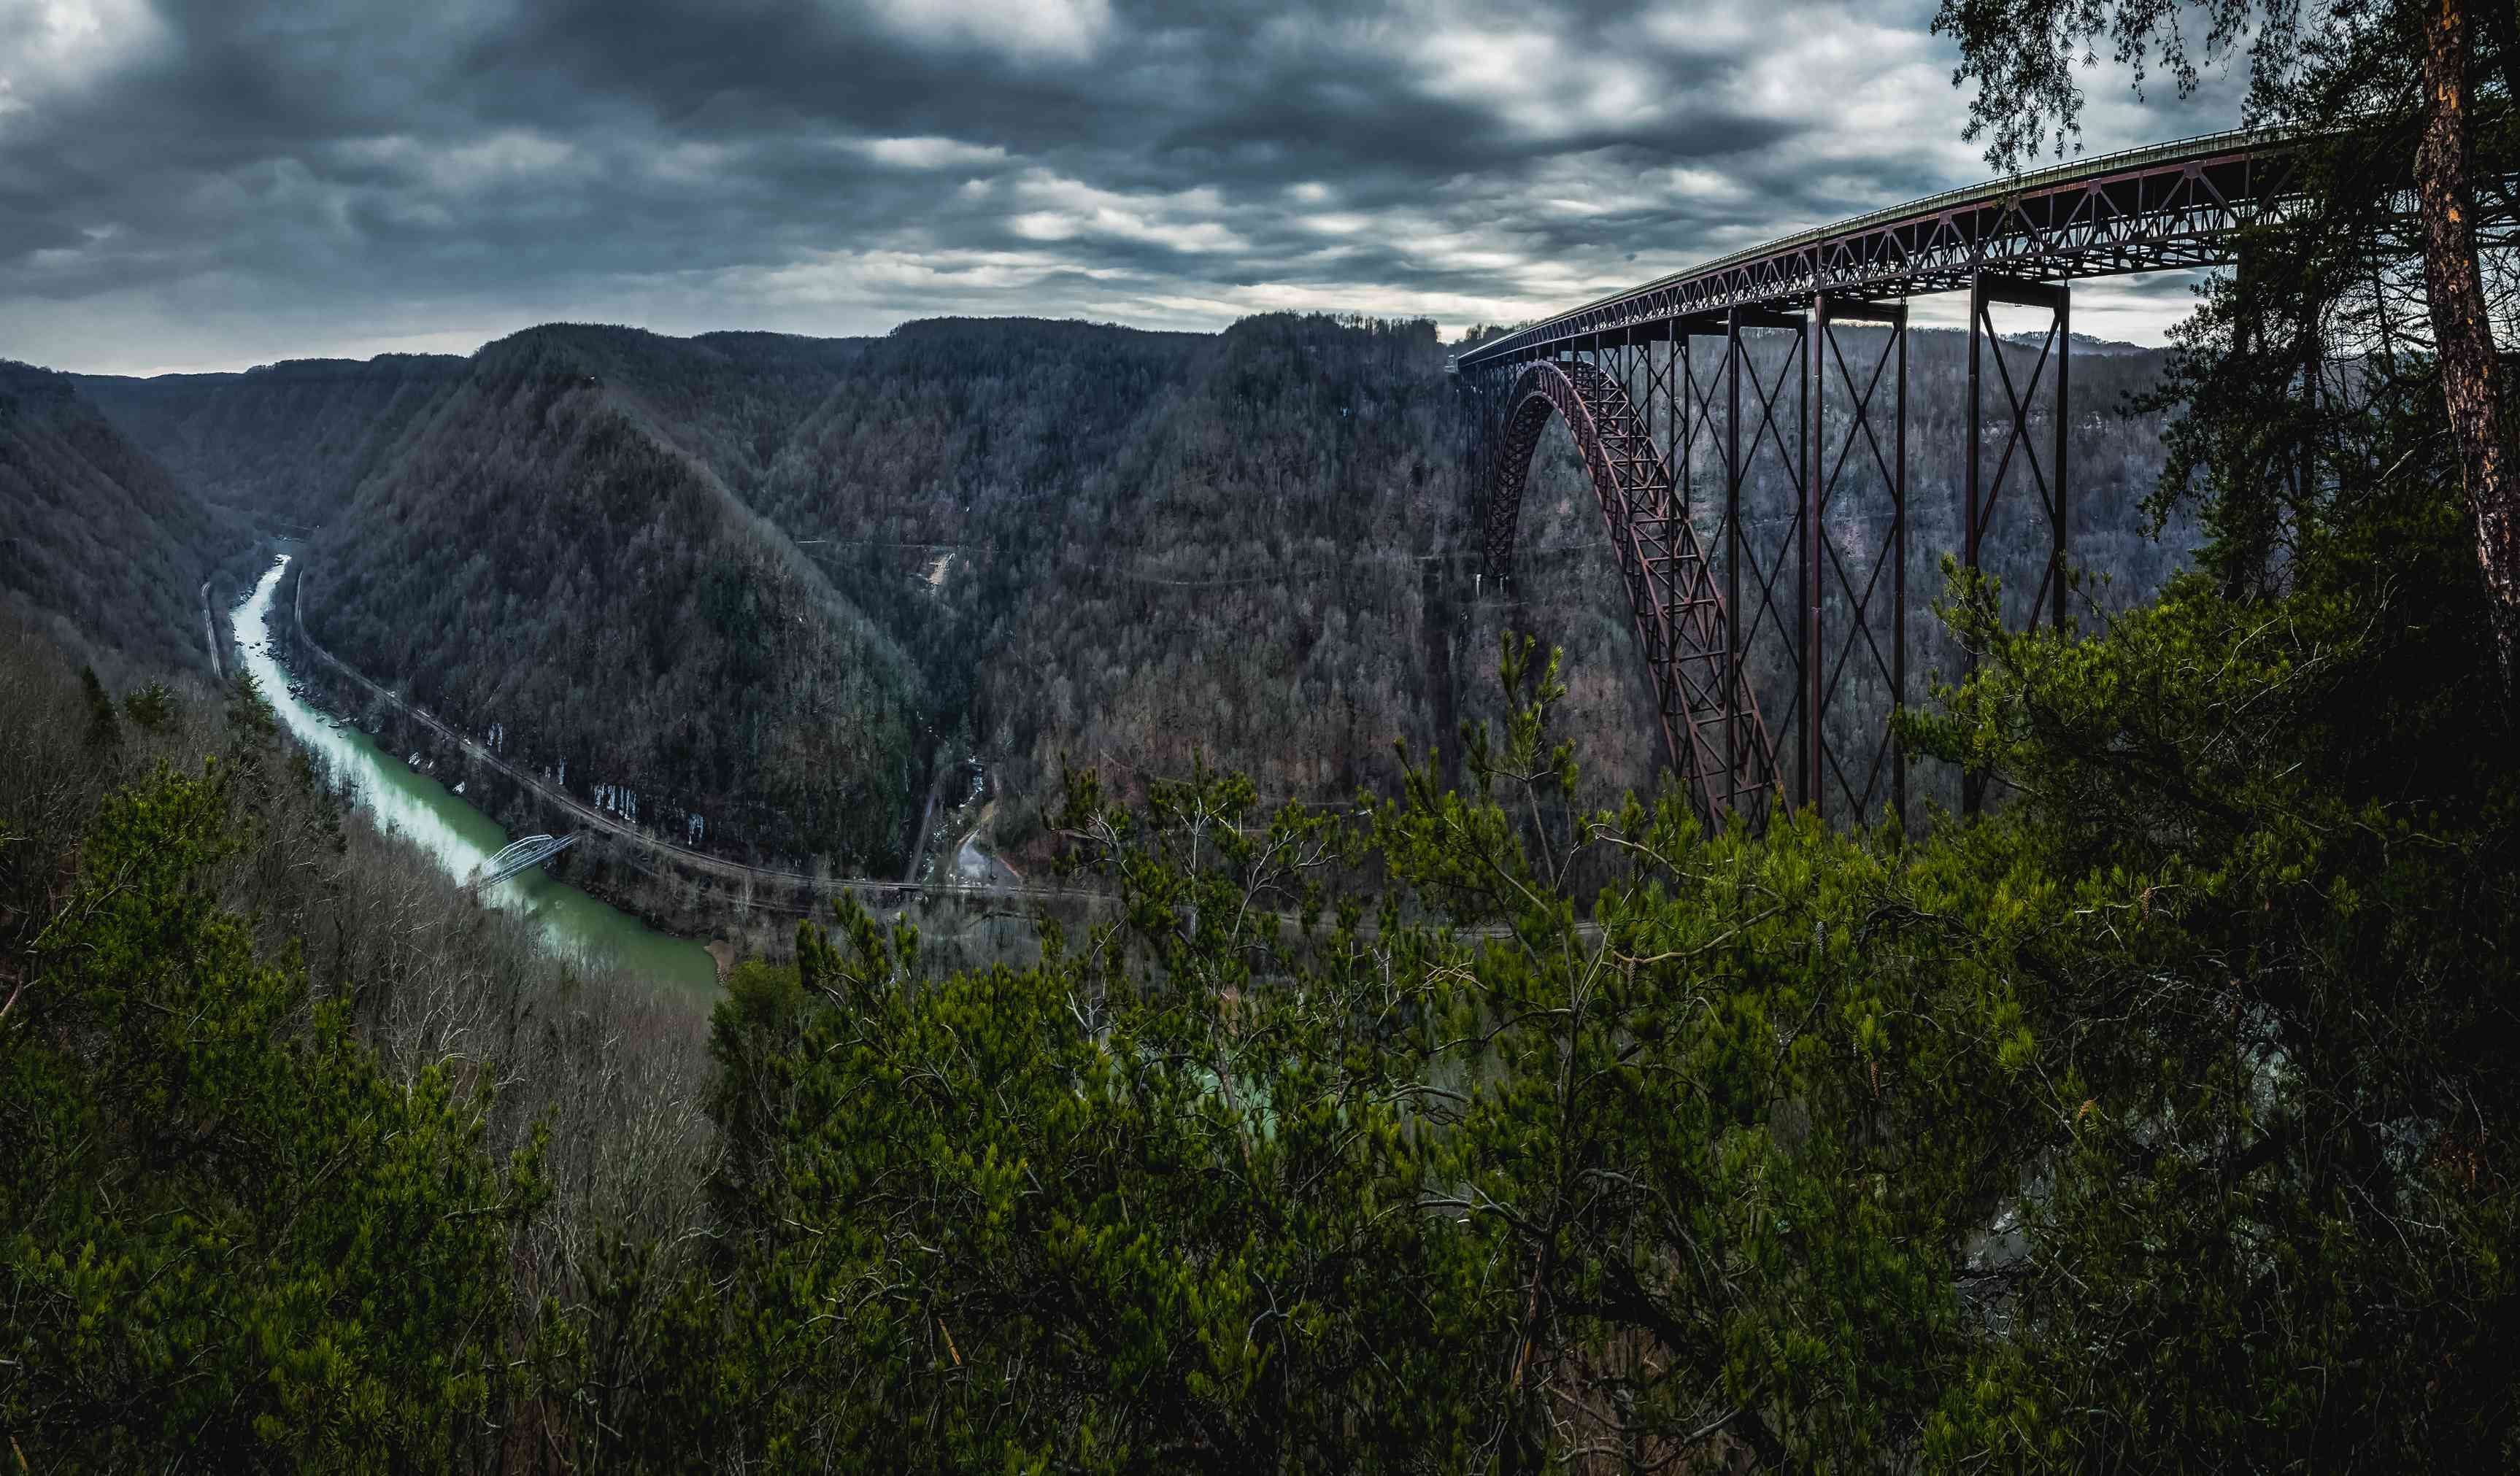 New River Gorge is thought to be one of the oldest rivers in the world. It is the longest and deepest river gorge in the Appalachian Mountains.